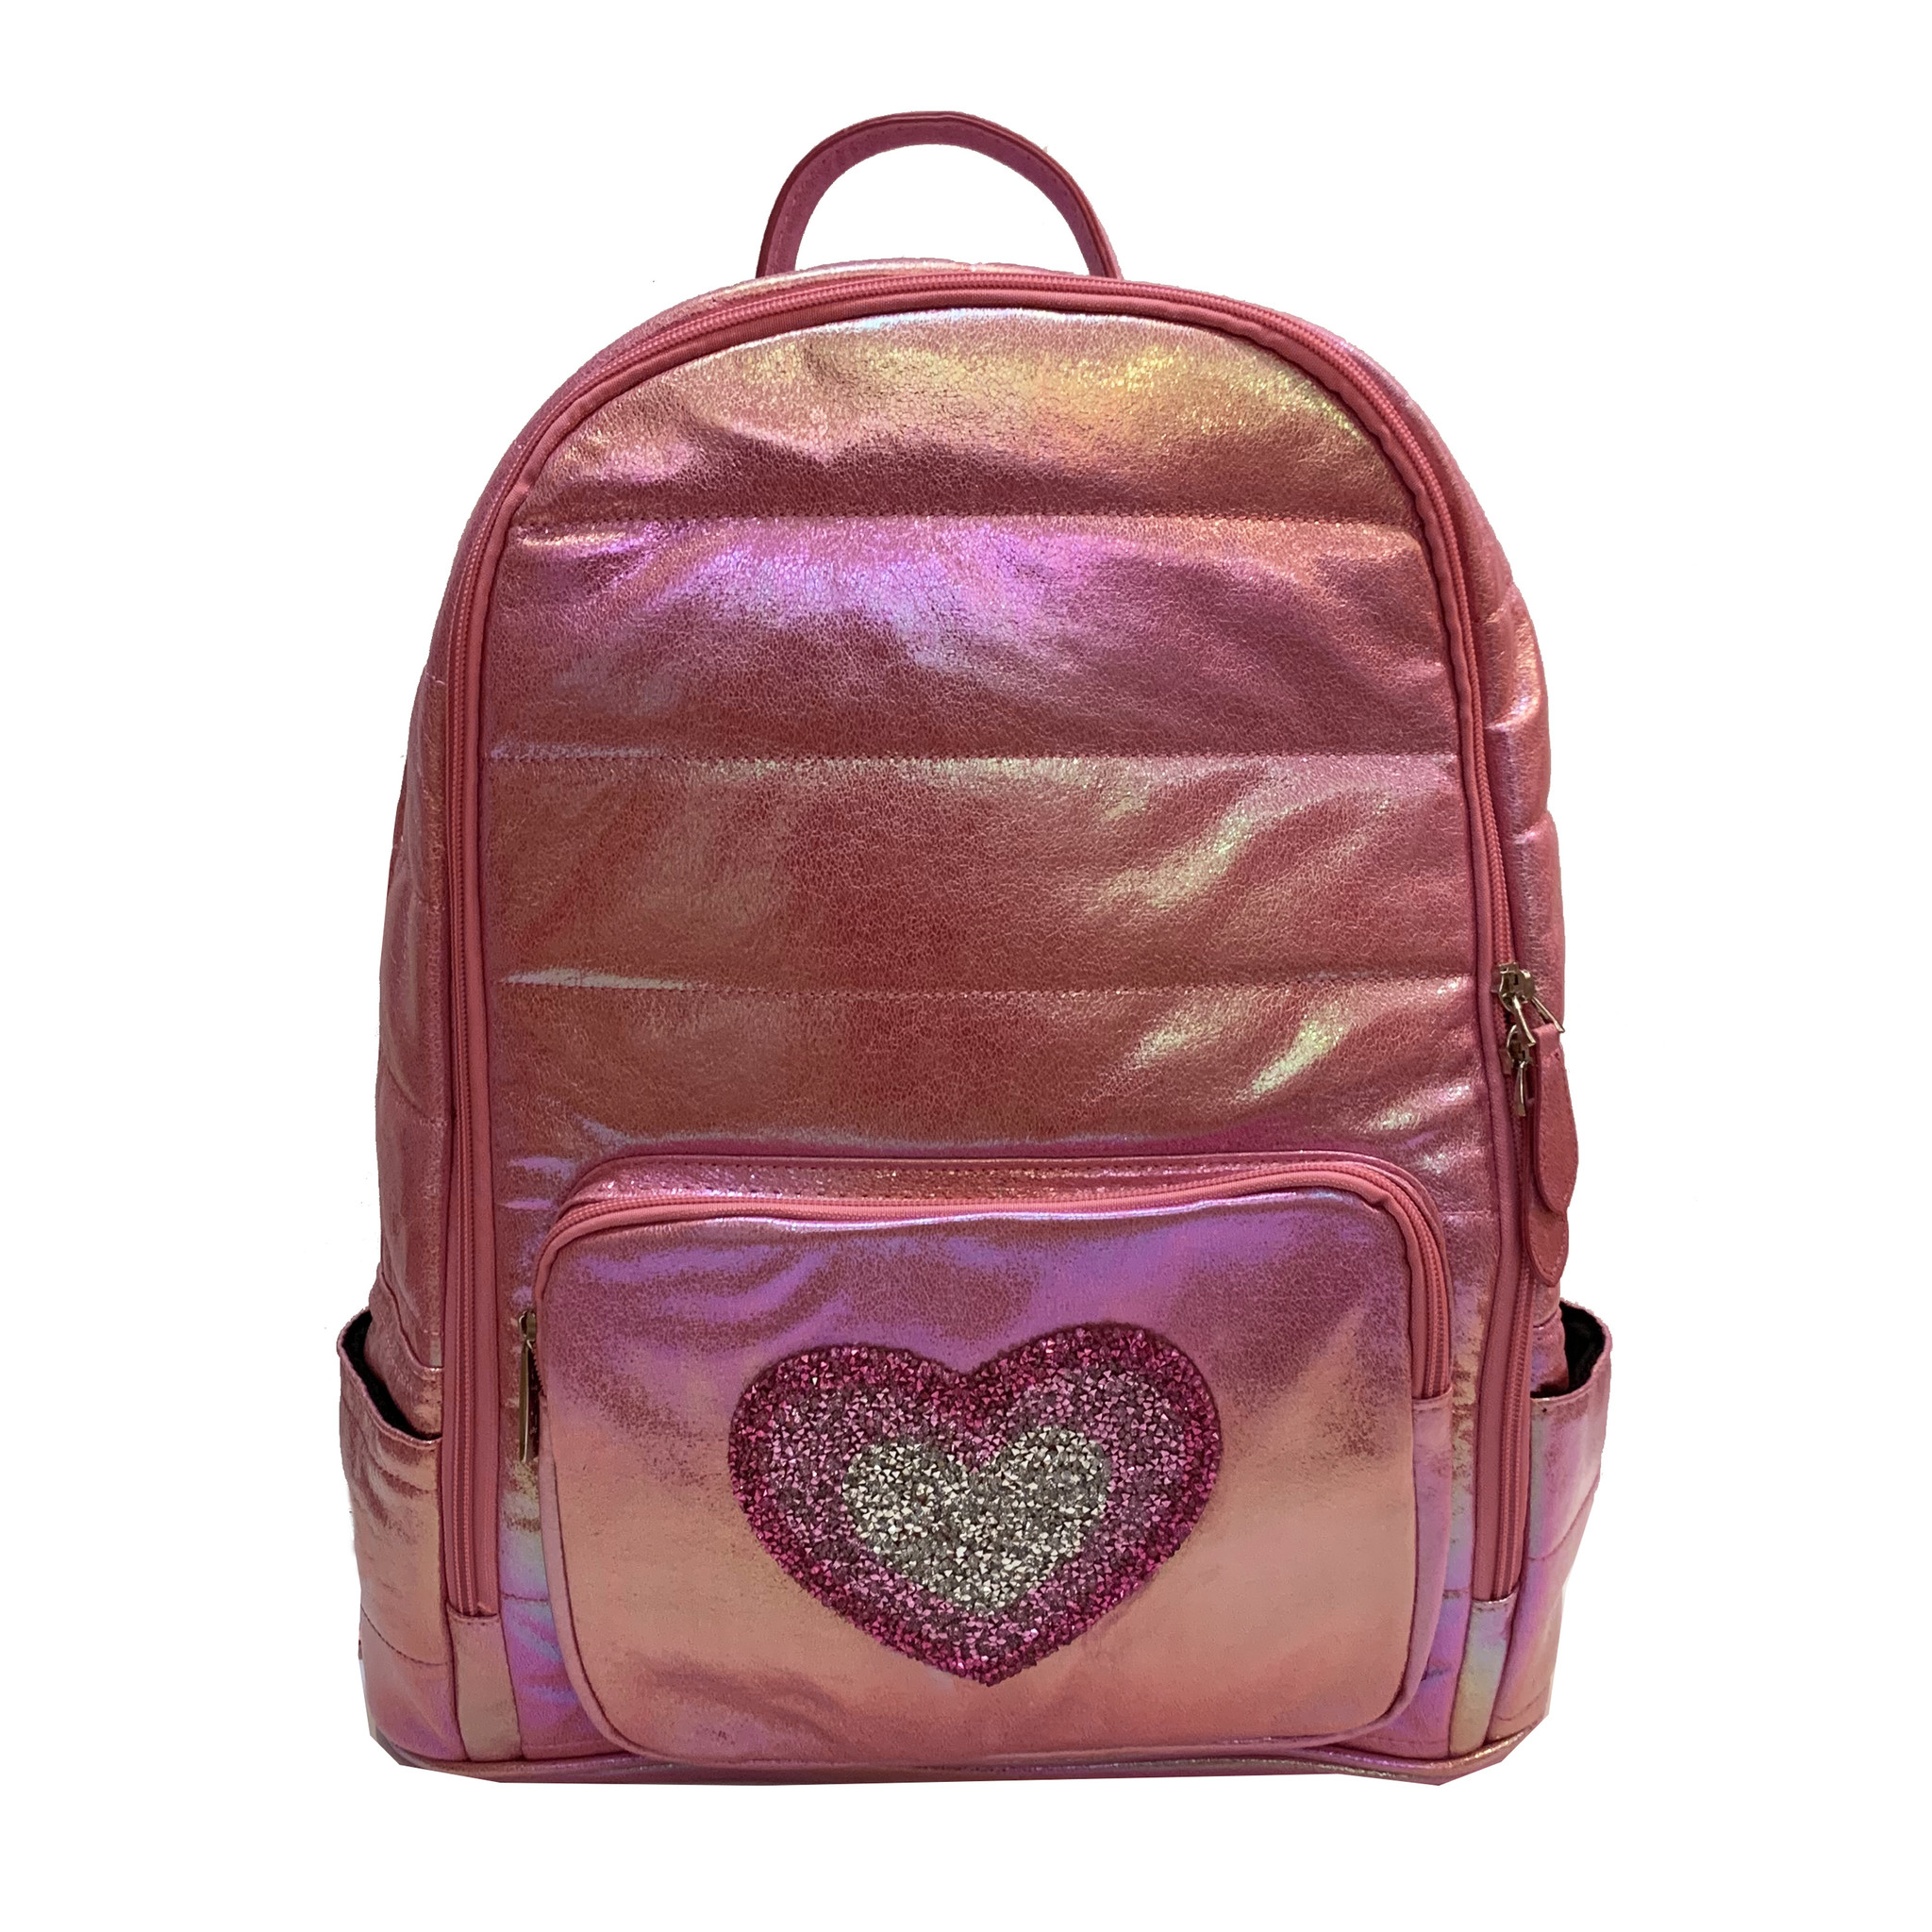 Bari Lynn Pink Puffy Backpack with Heart